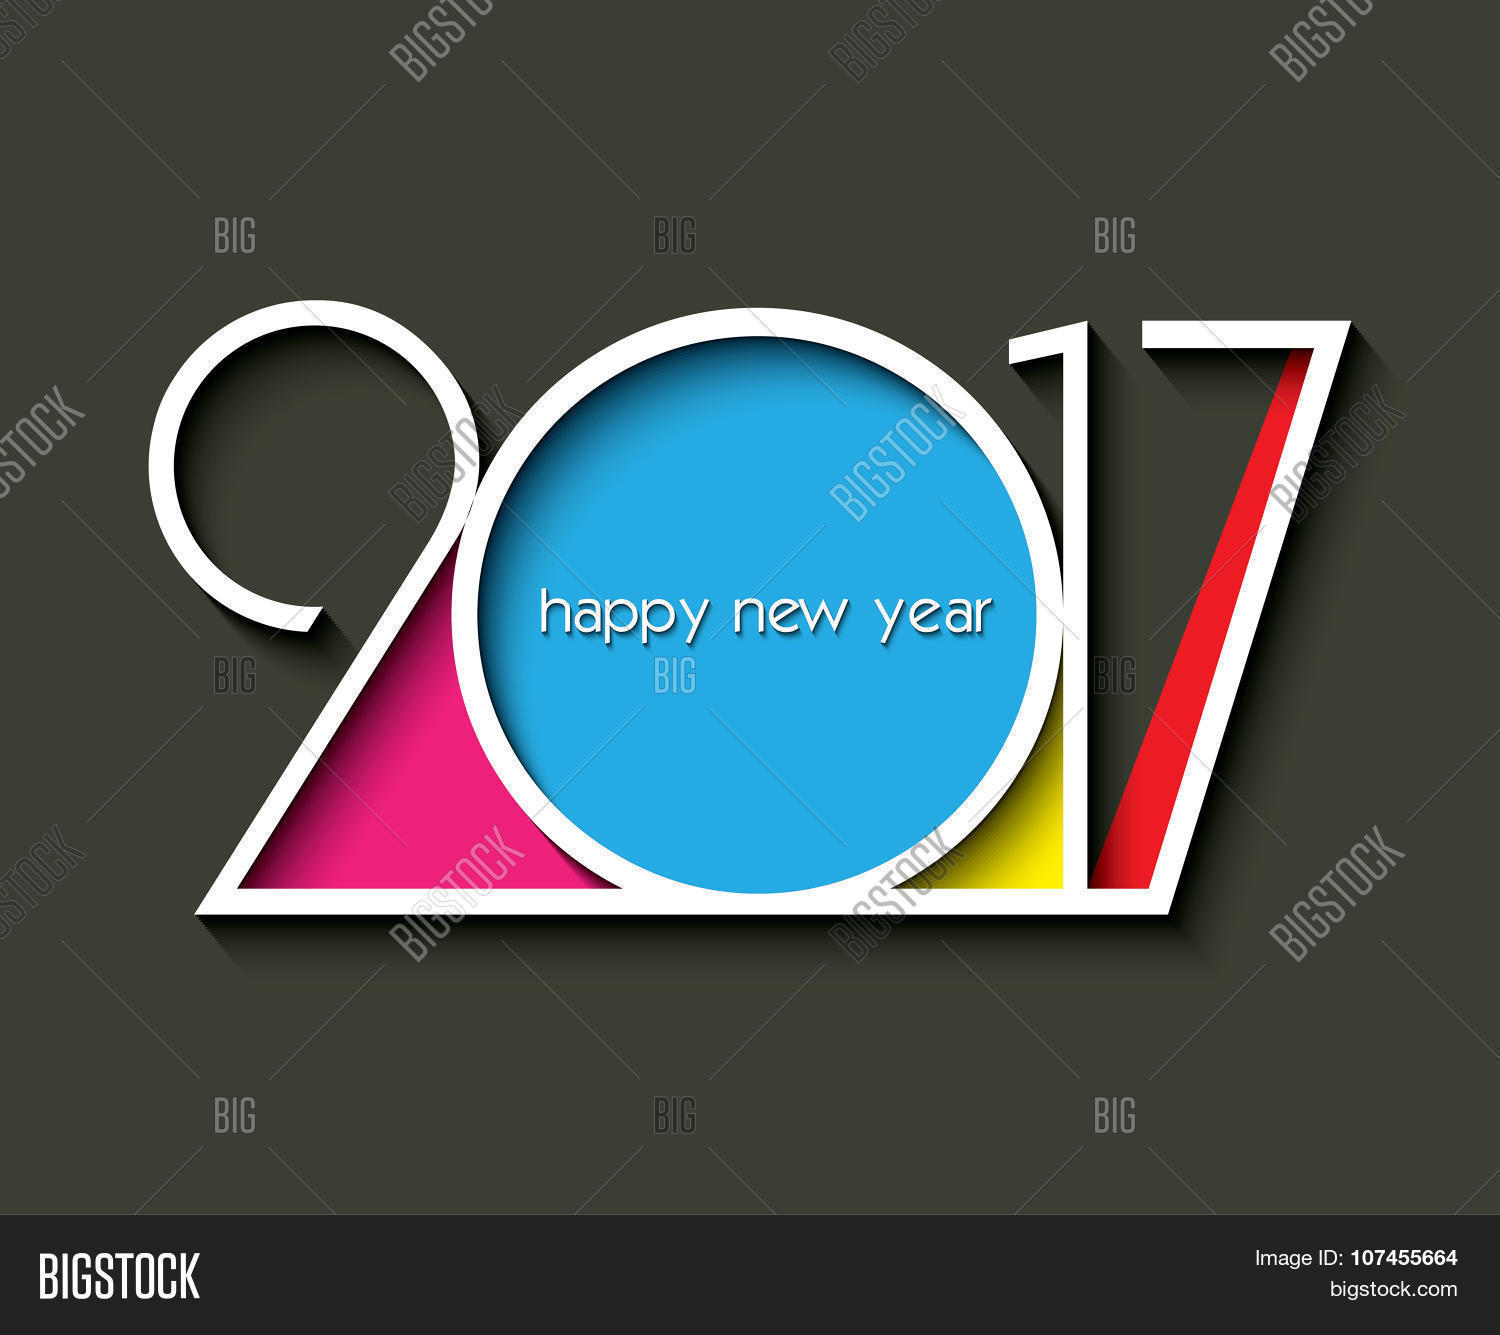 2017 new year creative design for your greetings card flyers invitation posters